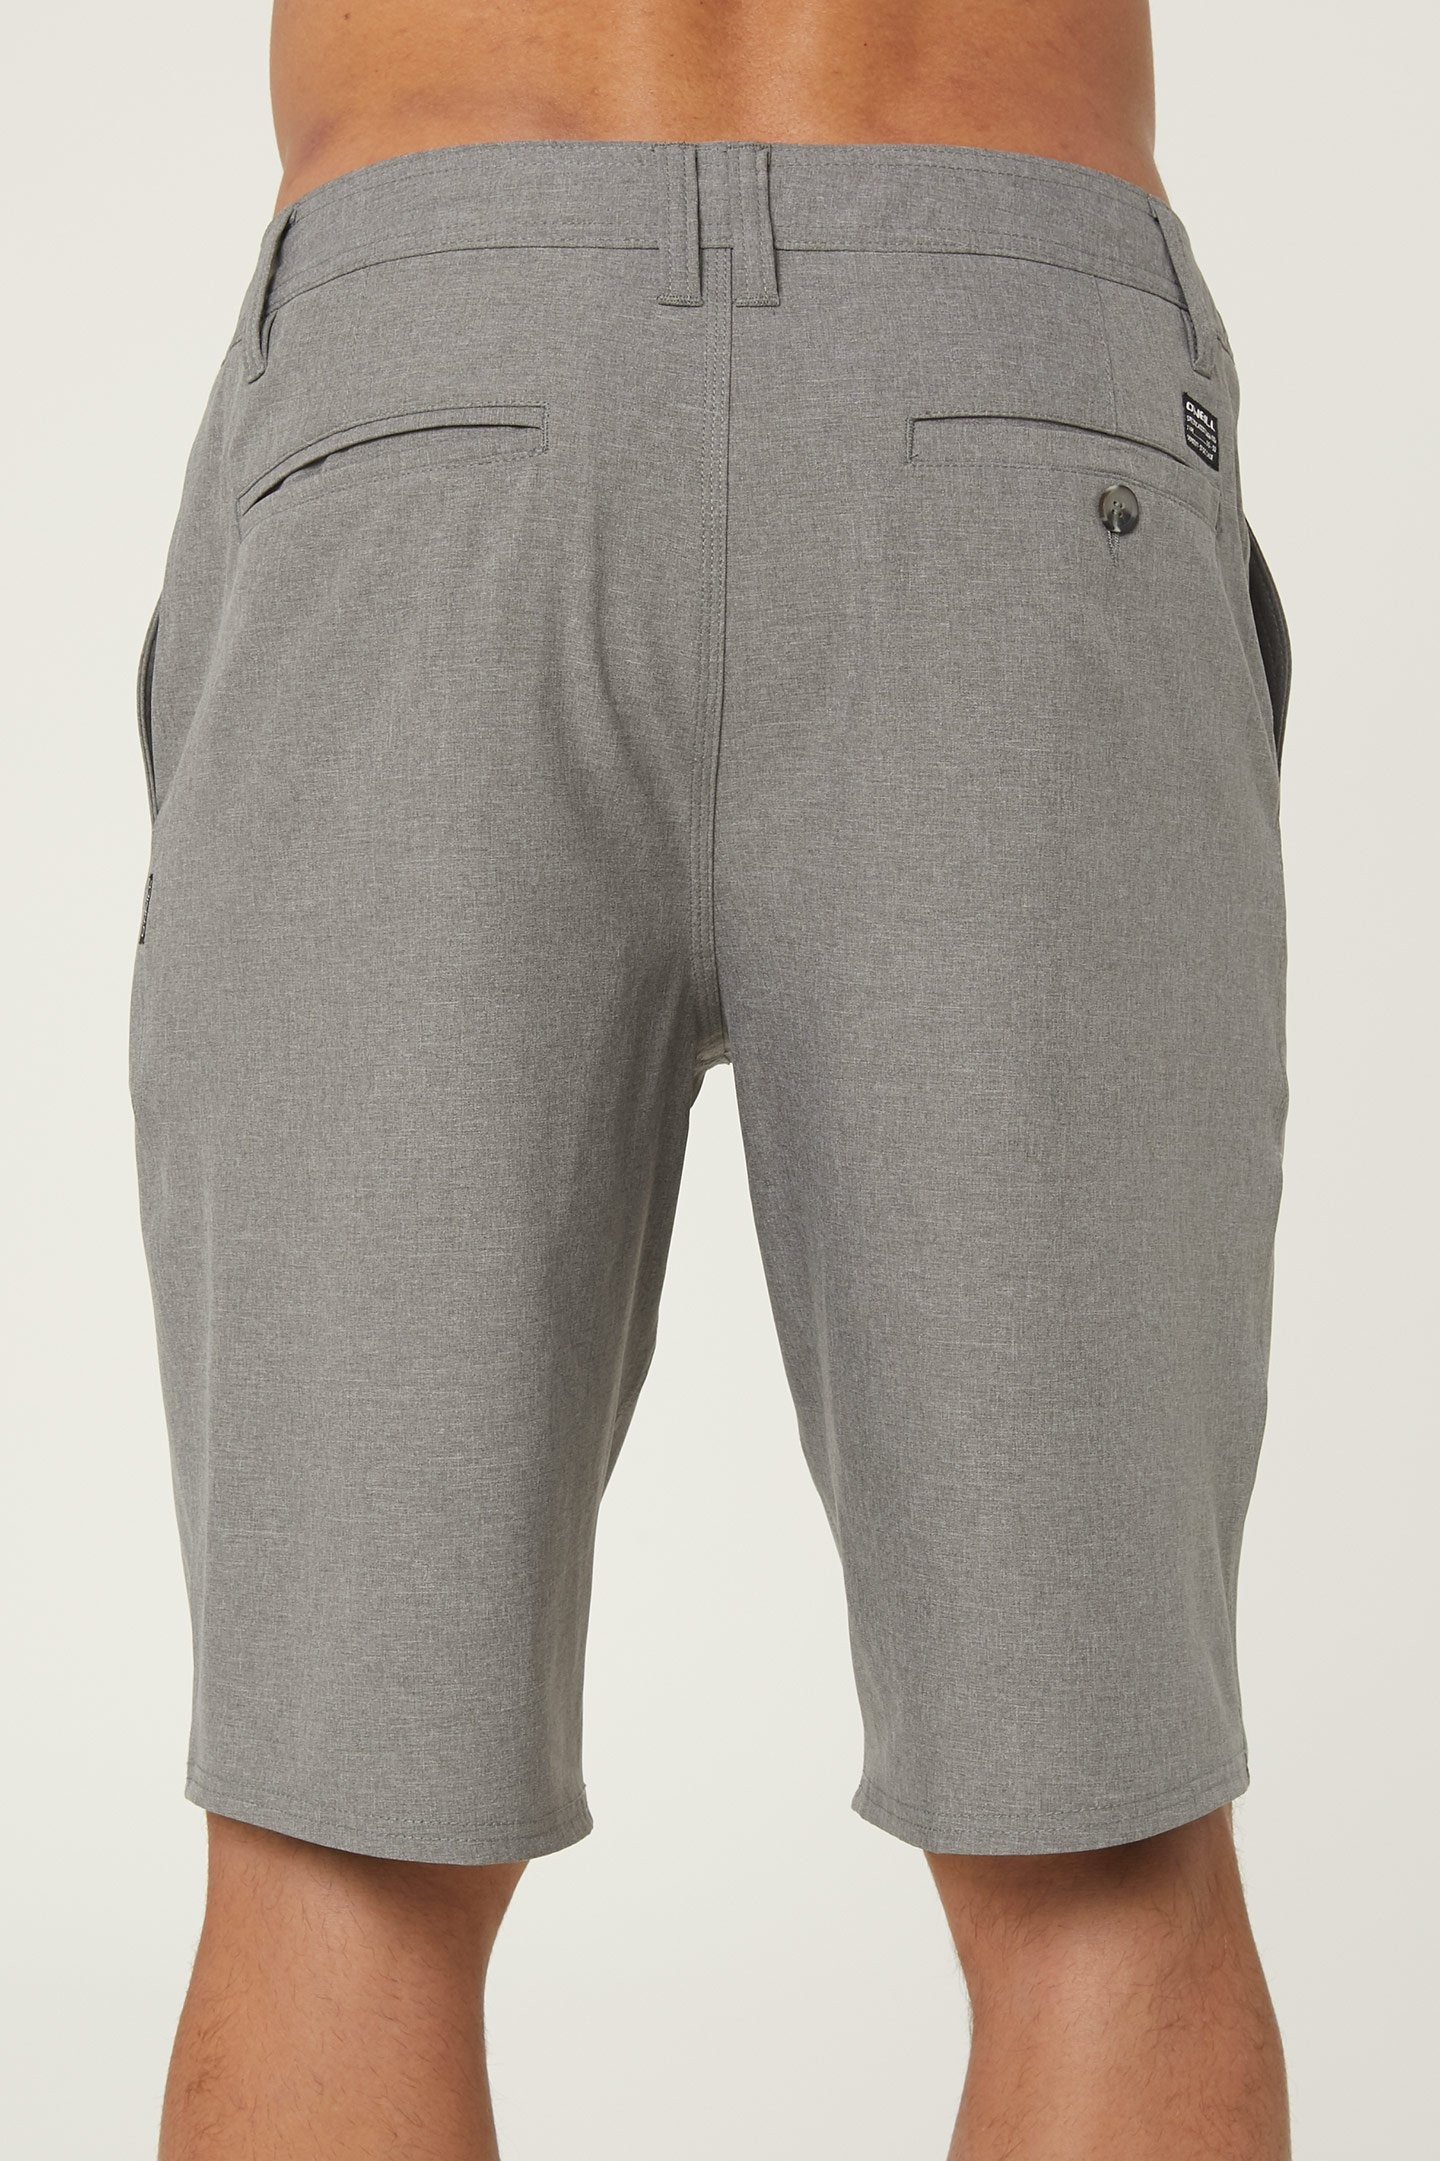 ff45e18fd55f5 O'NEILL MEN'S LOADED RESERVE HEATHER HYBRID SHORTS